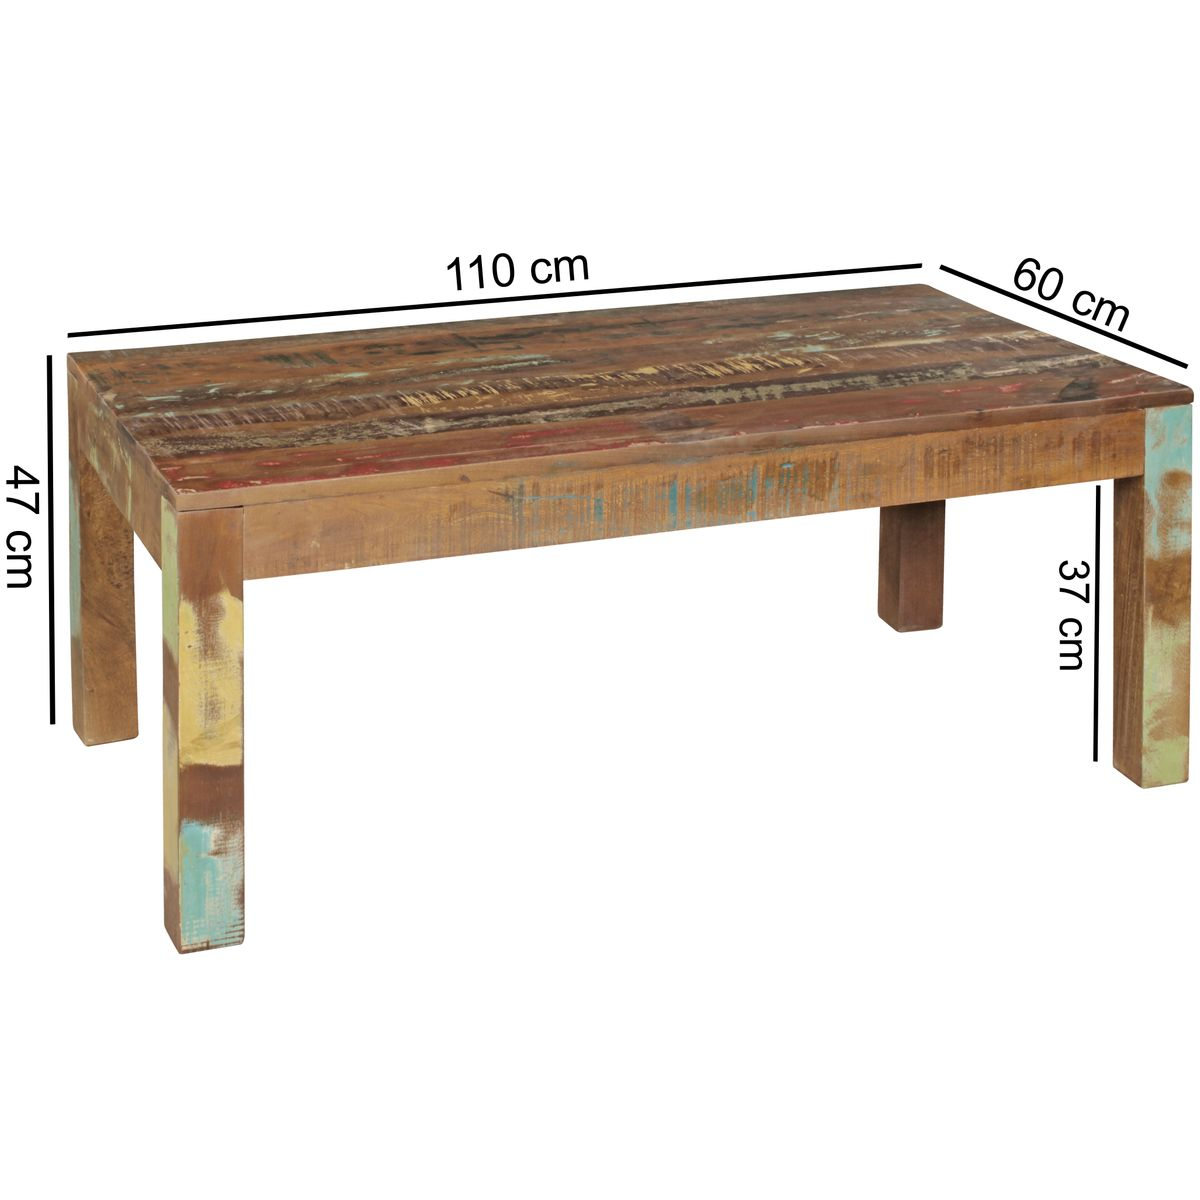 Coffee table 110 x 60 side table shabby chic couch table for Coffee table 60 x 60